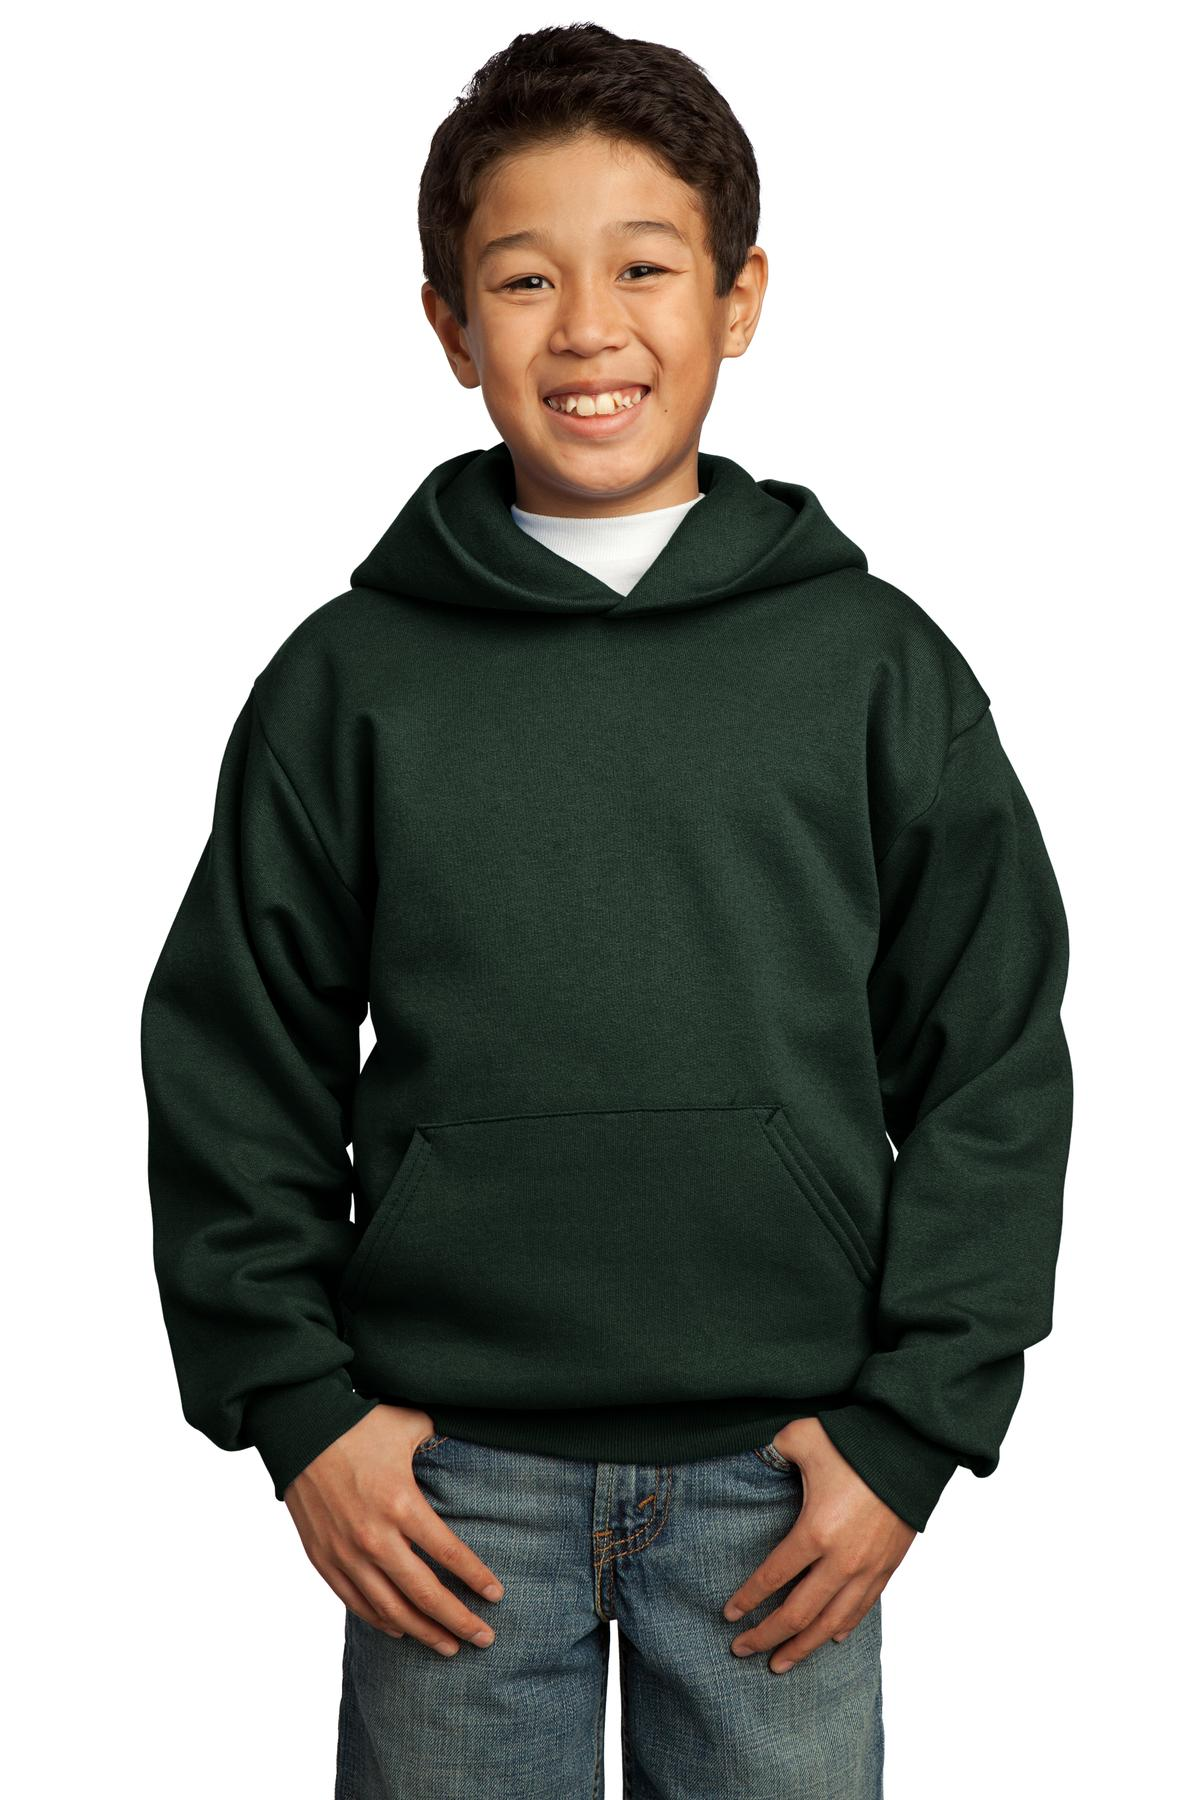 Port & Company ®  - Youth Core Fleece Pullover Hooded Sweatshirt.  PC90YH - Dark Green